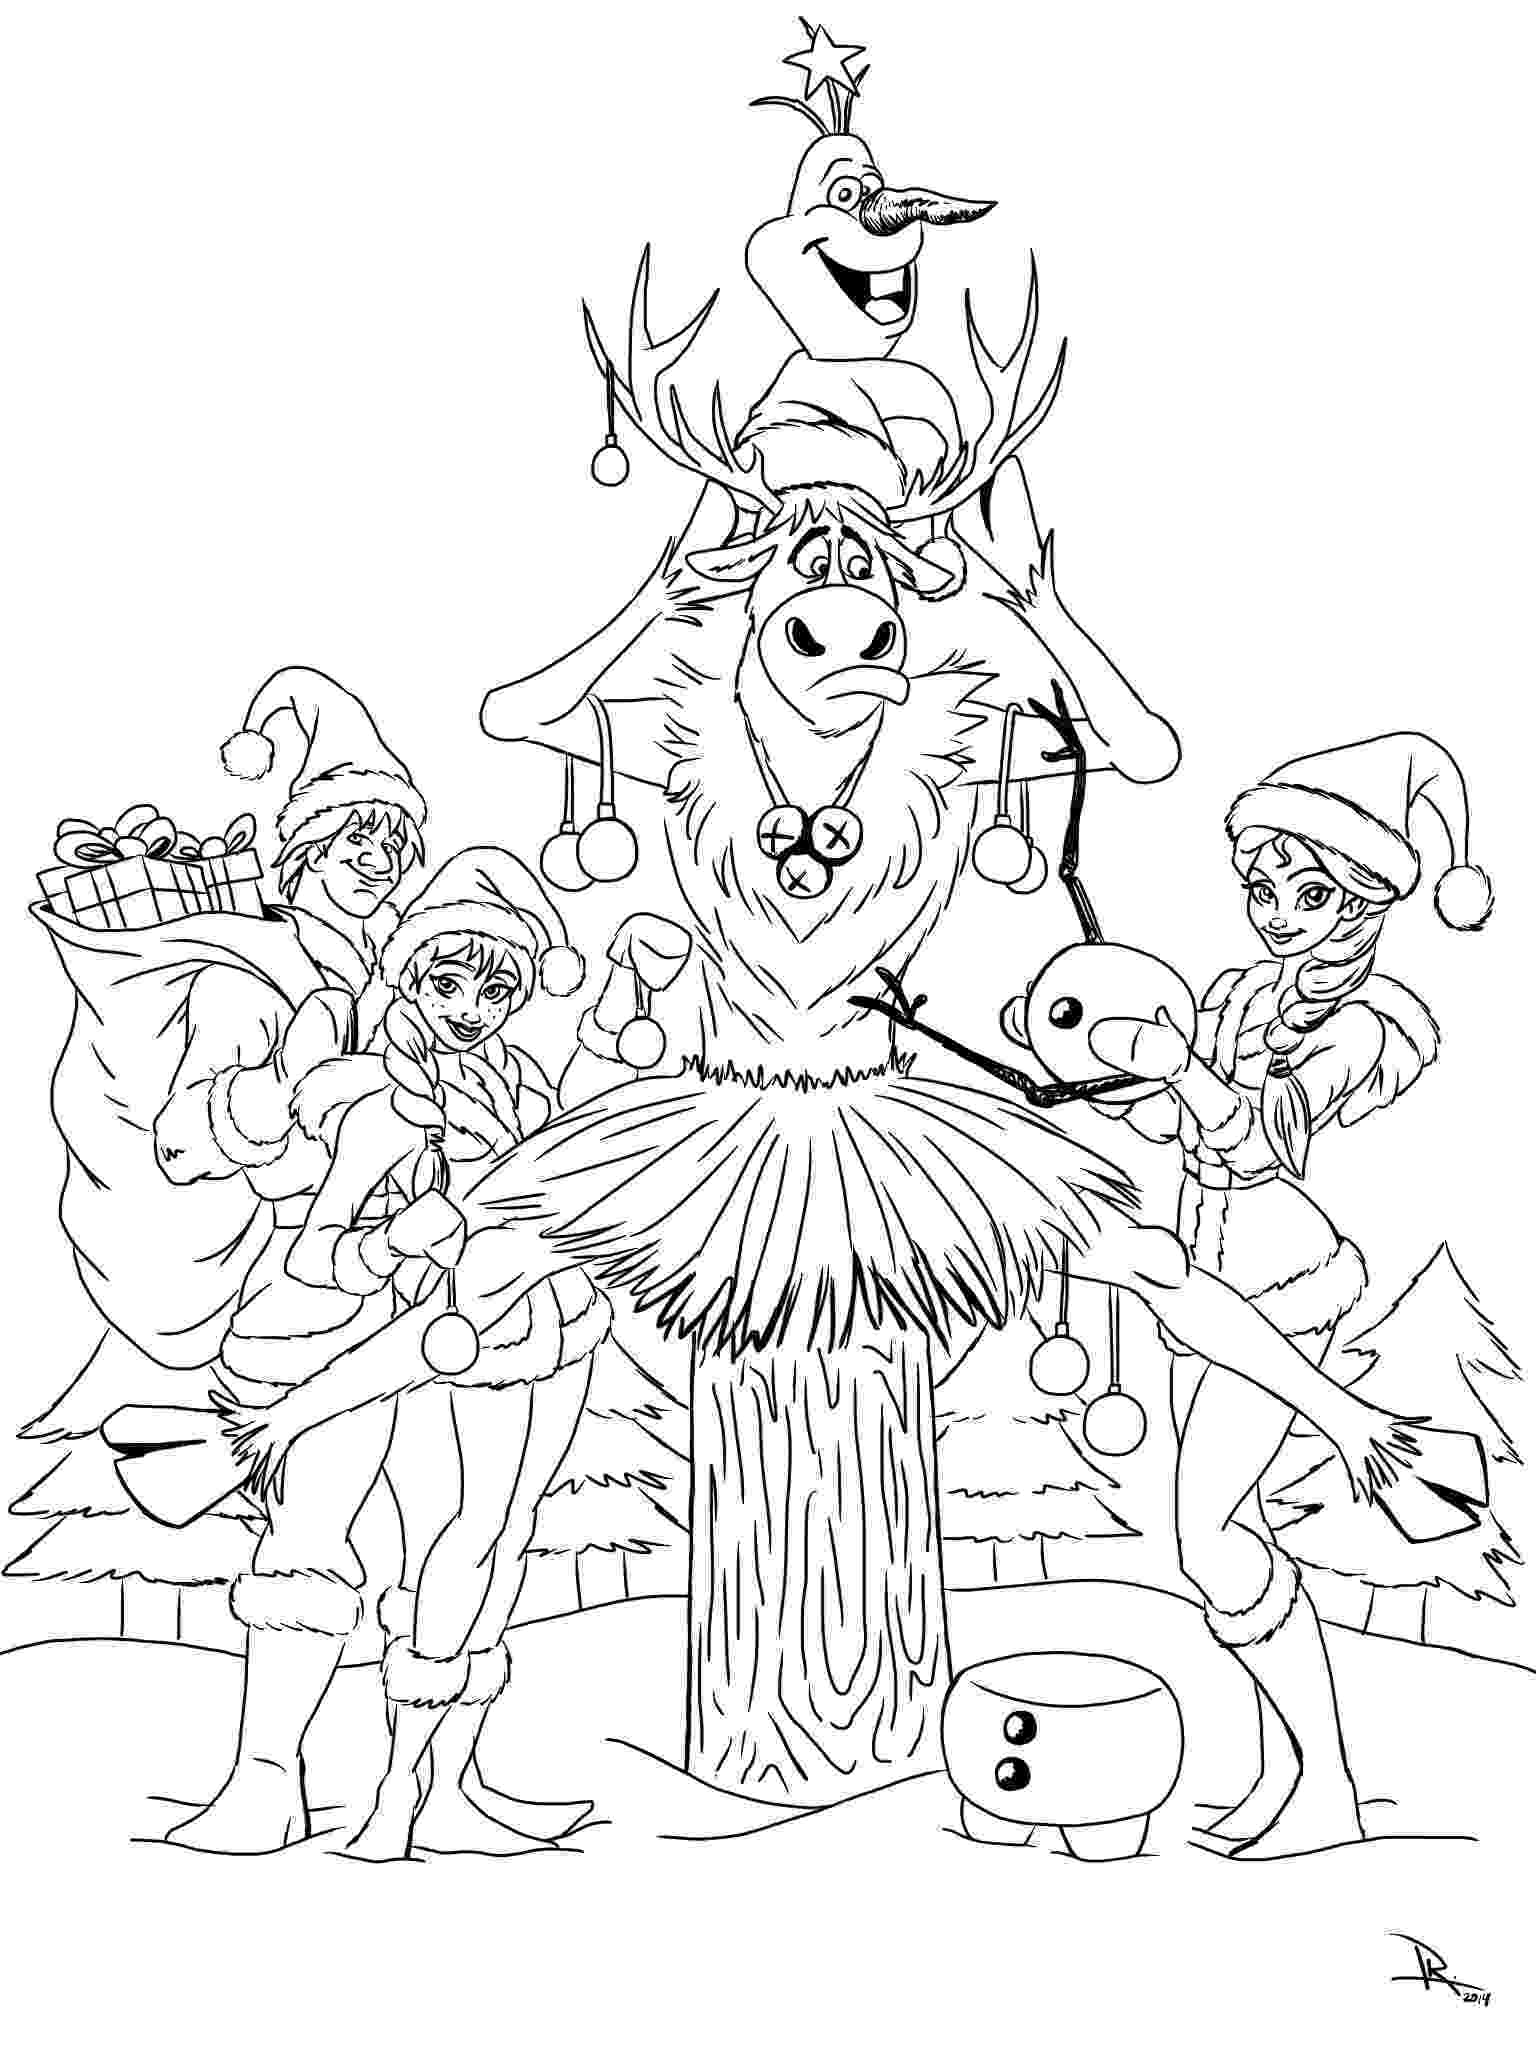 chirstmas coloring pages coloring pages christmas disney gtgt disney coloring pages pages chirstmas coloring